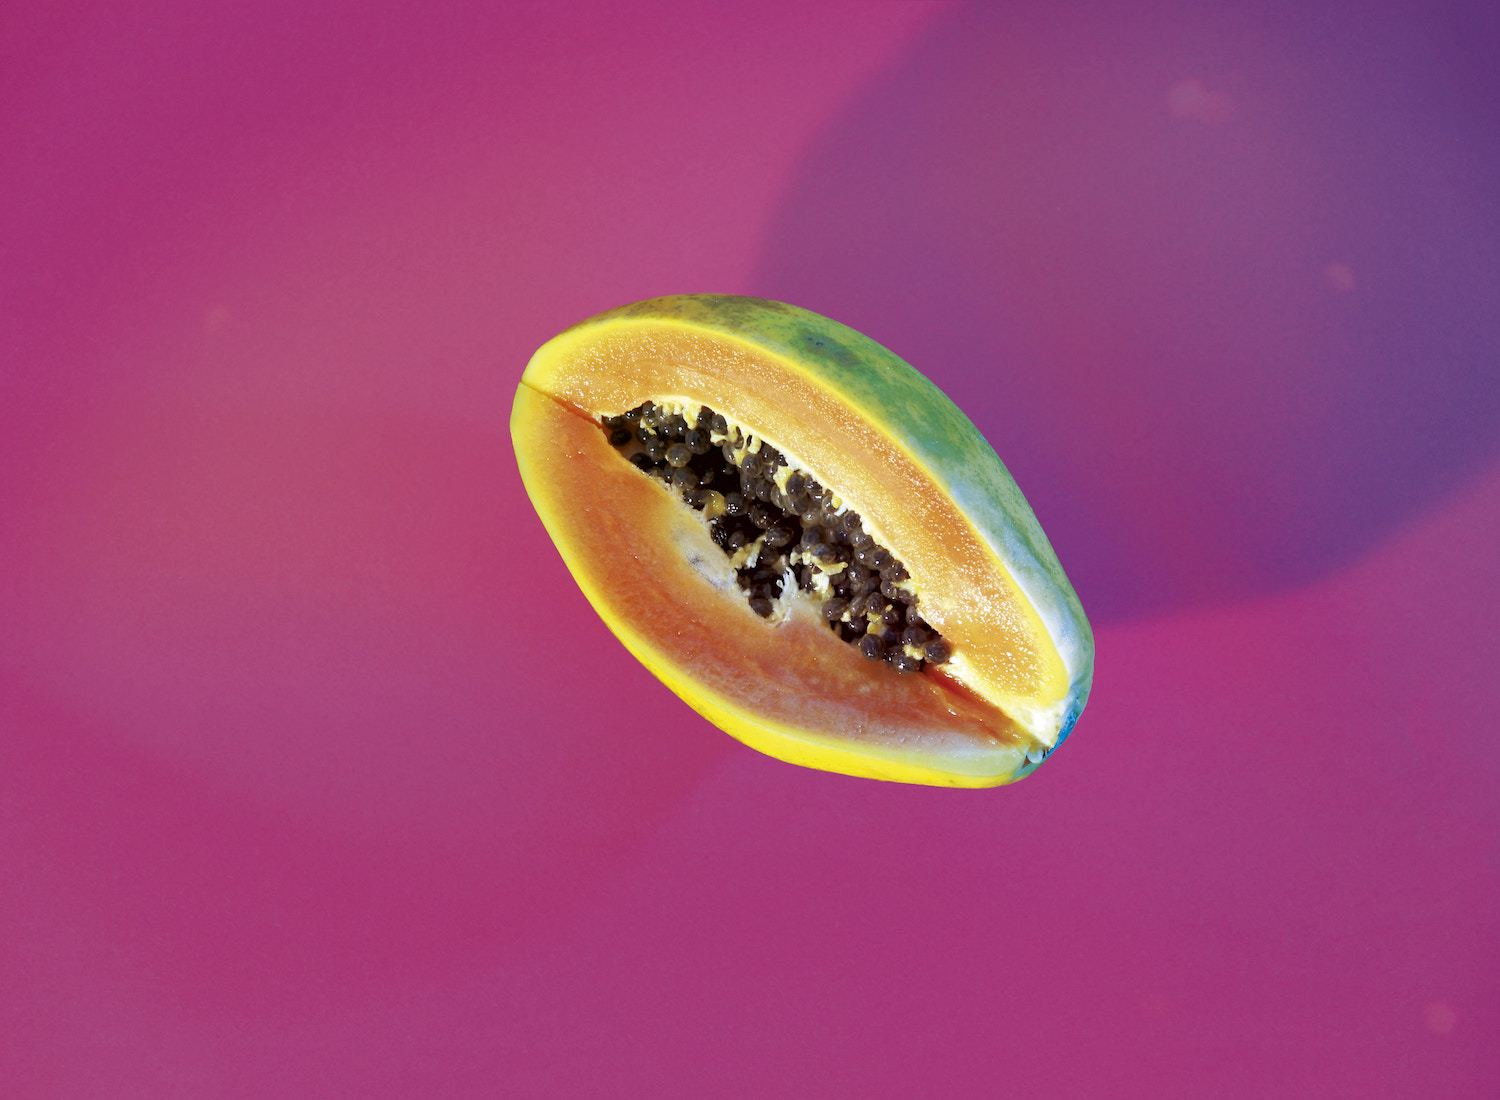 Shape Magazine - 6 Papaya Recipes That Taste Like You're On a Tropical Vacation